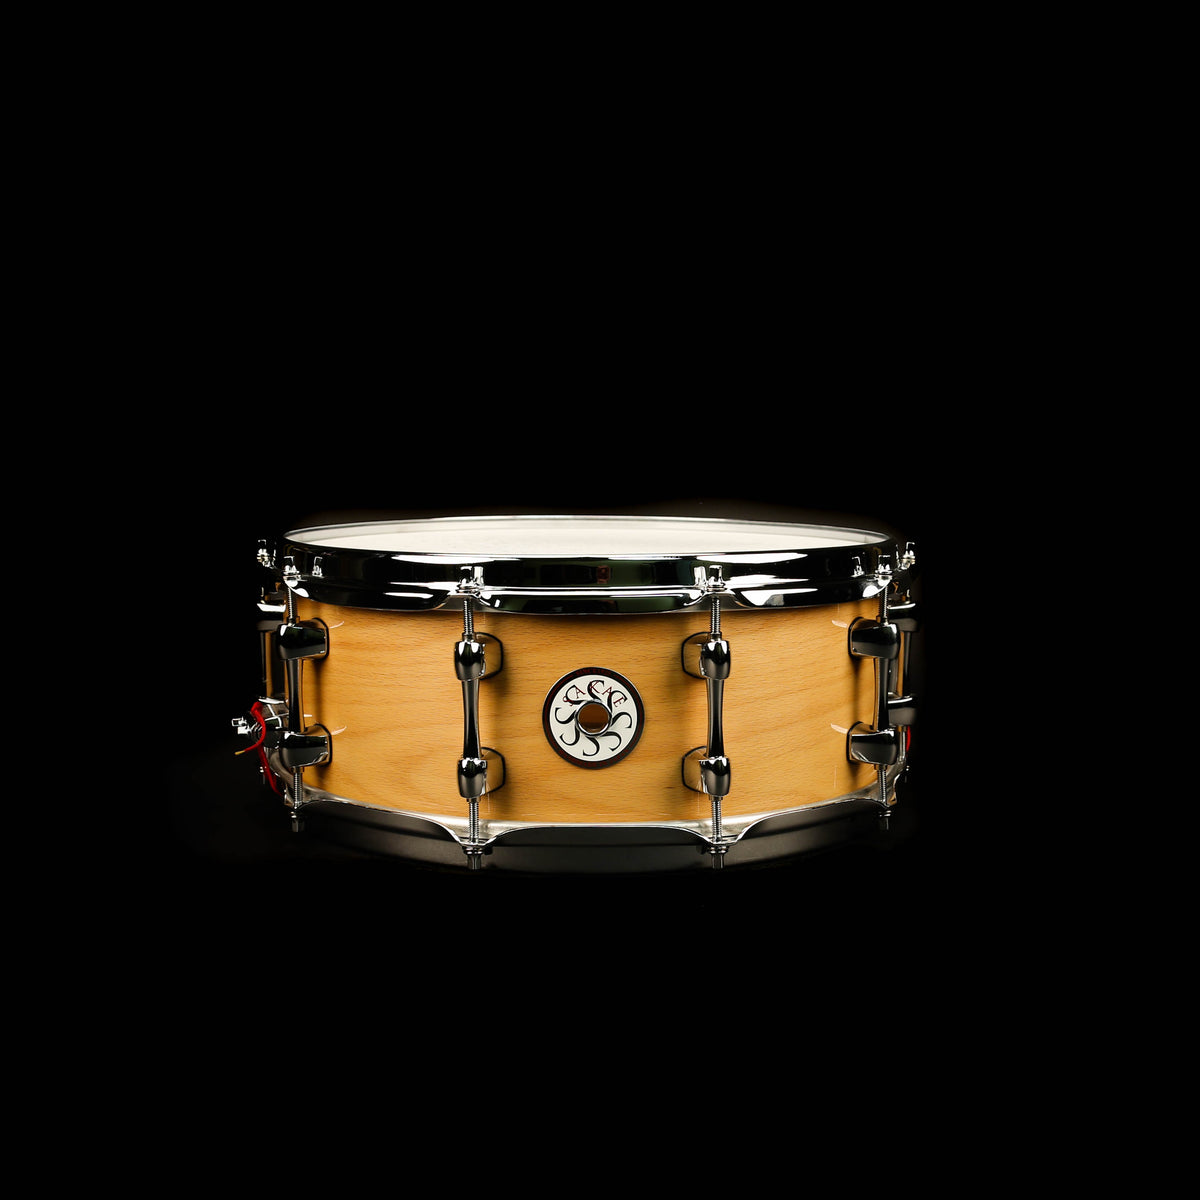 Sakae Beech 5.5x14 Snare Drum Natural Lacquer - Used